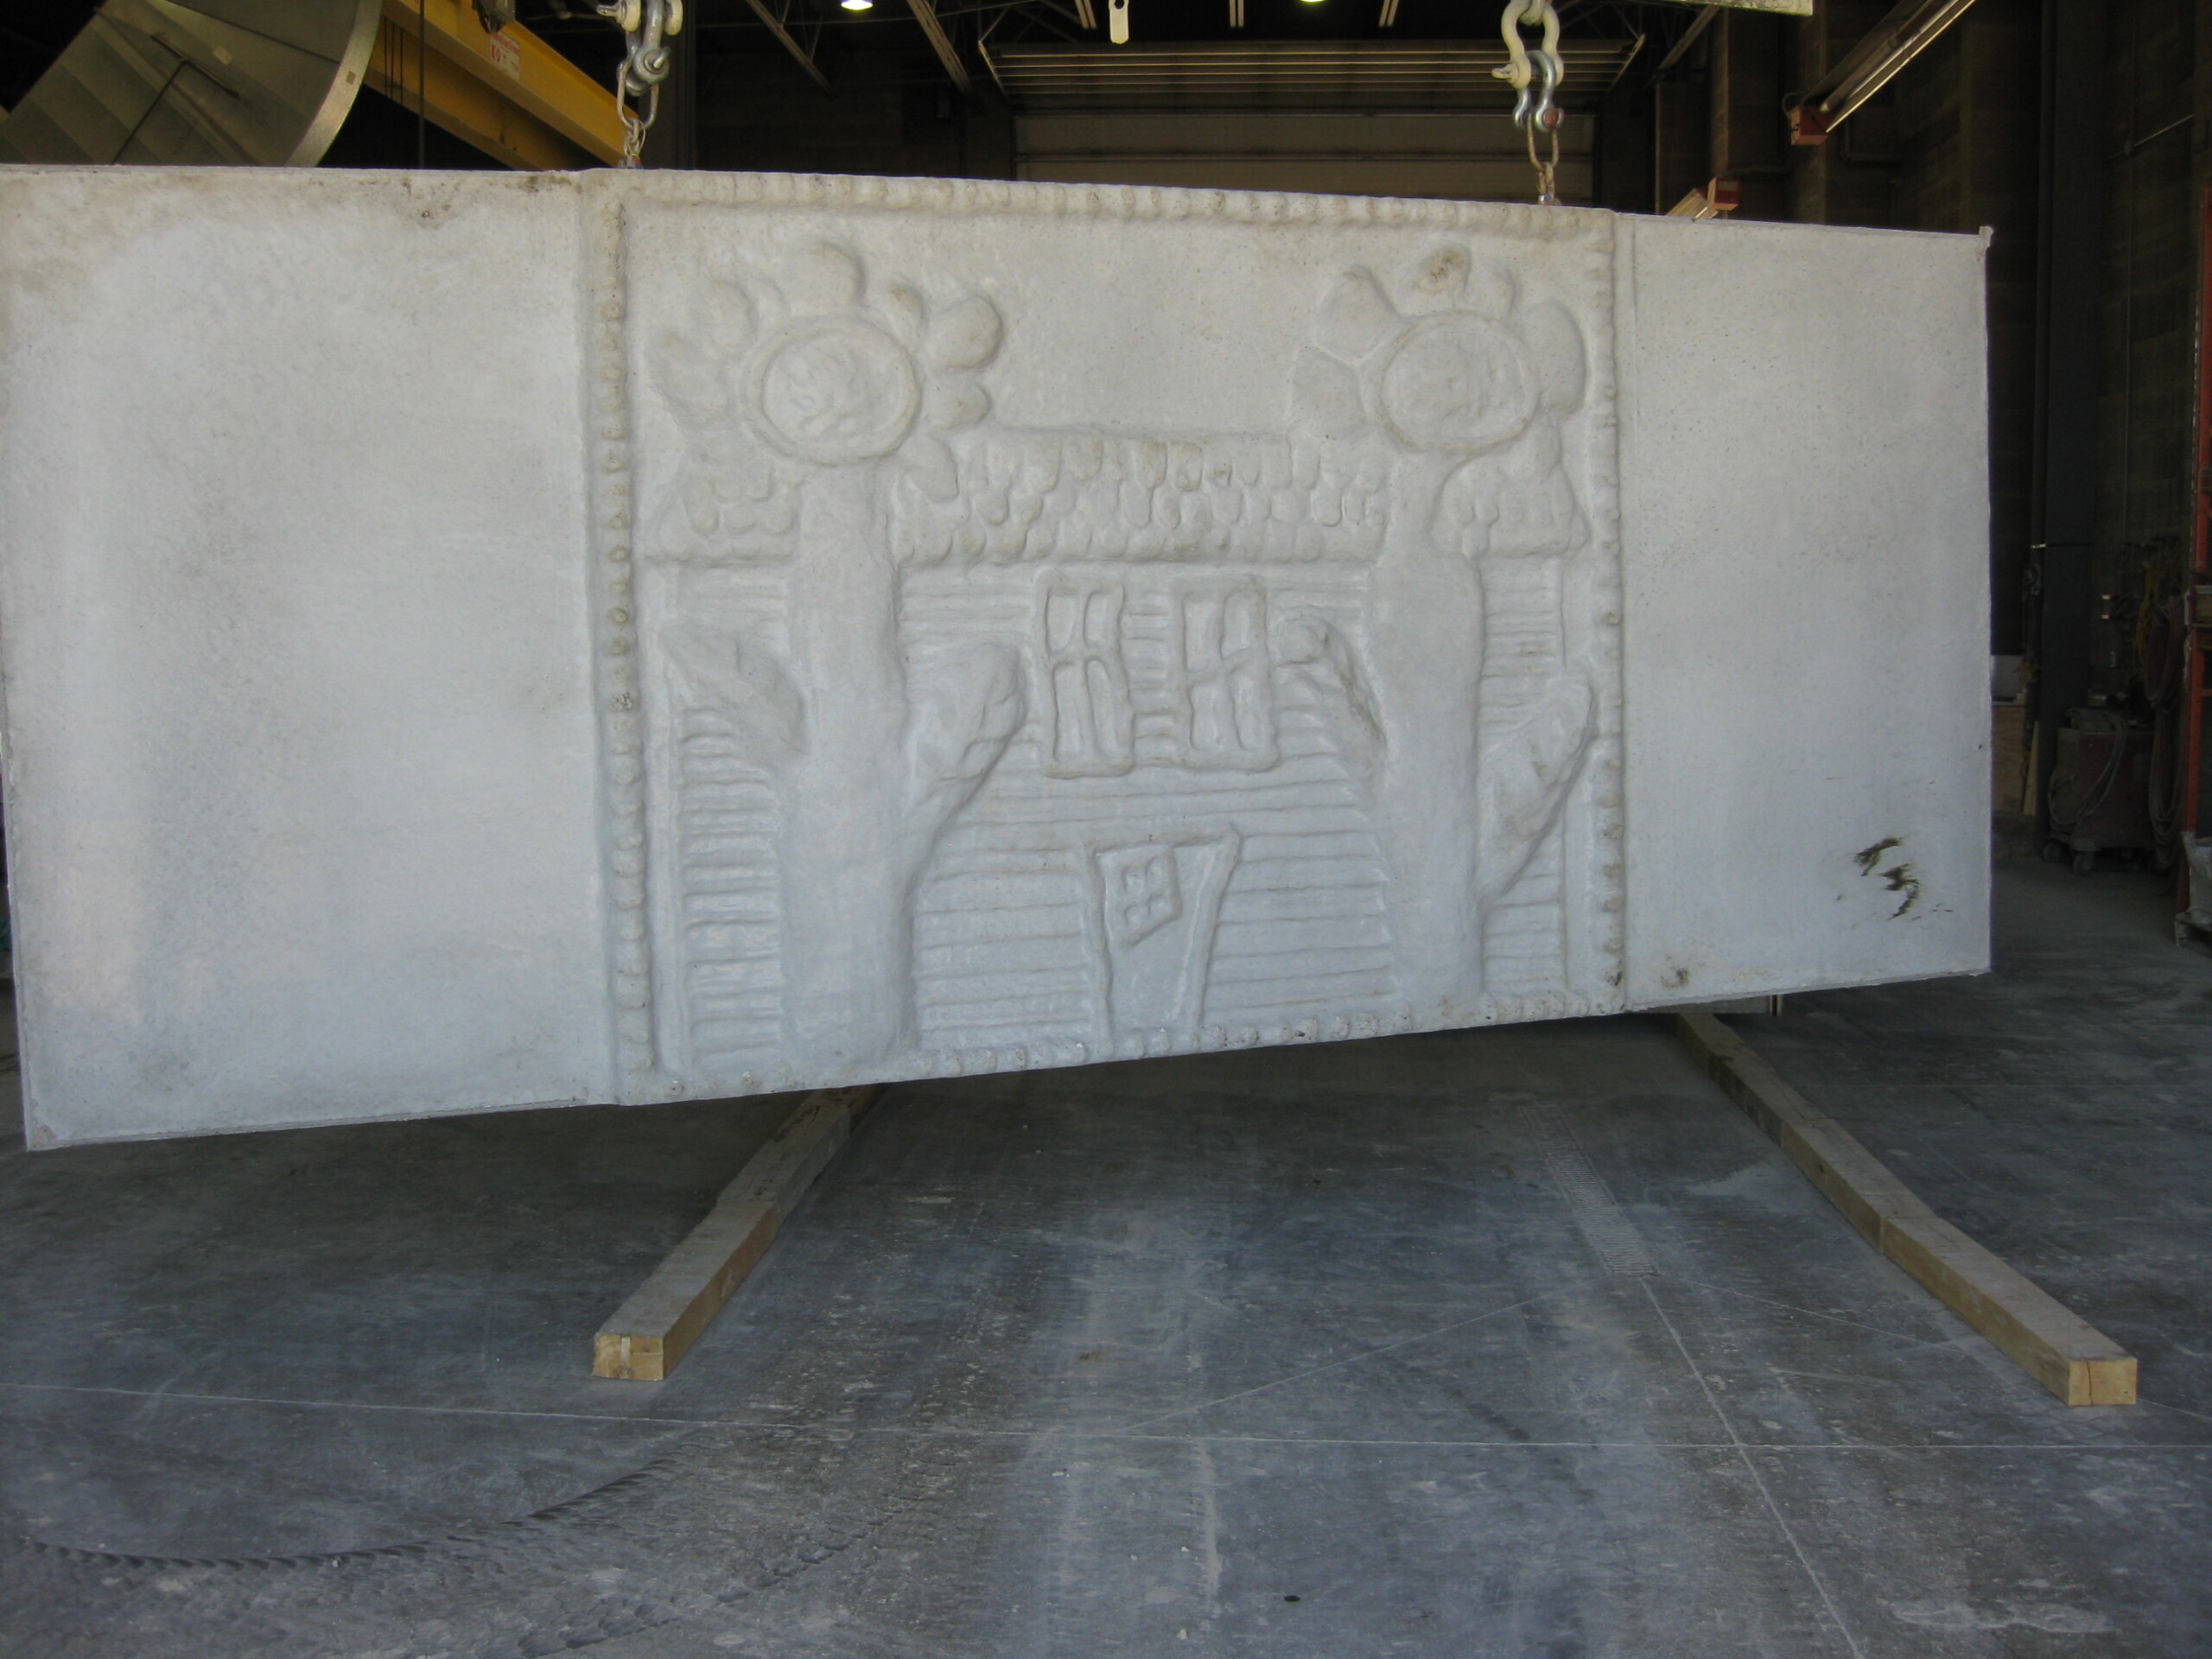 A custom panel created from a child's drawing for a precast noise barrier along I-94 in Milwaukee, WI.